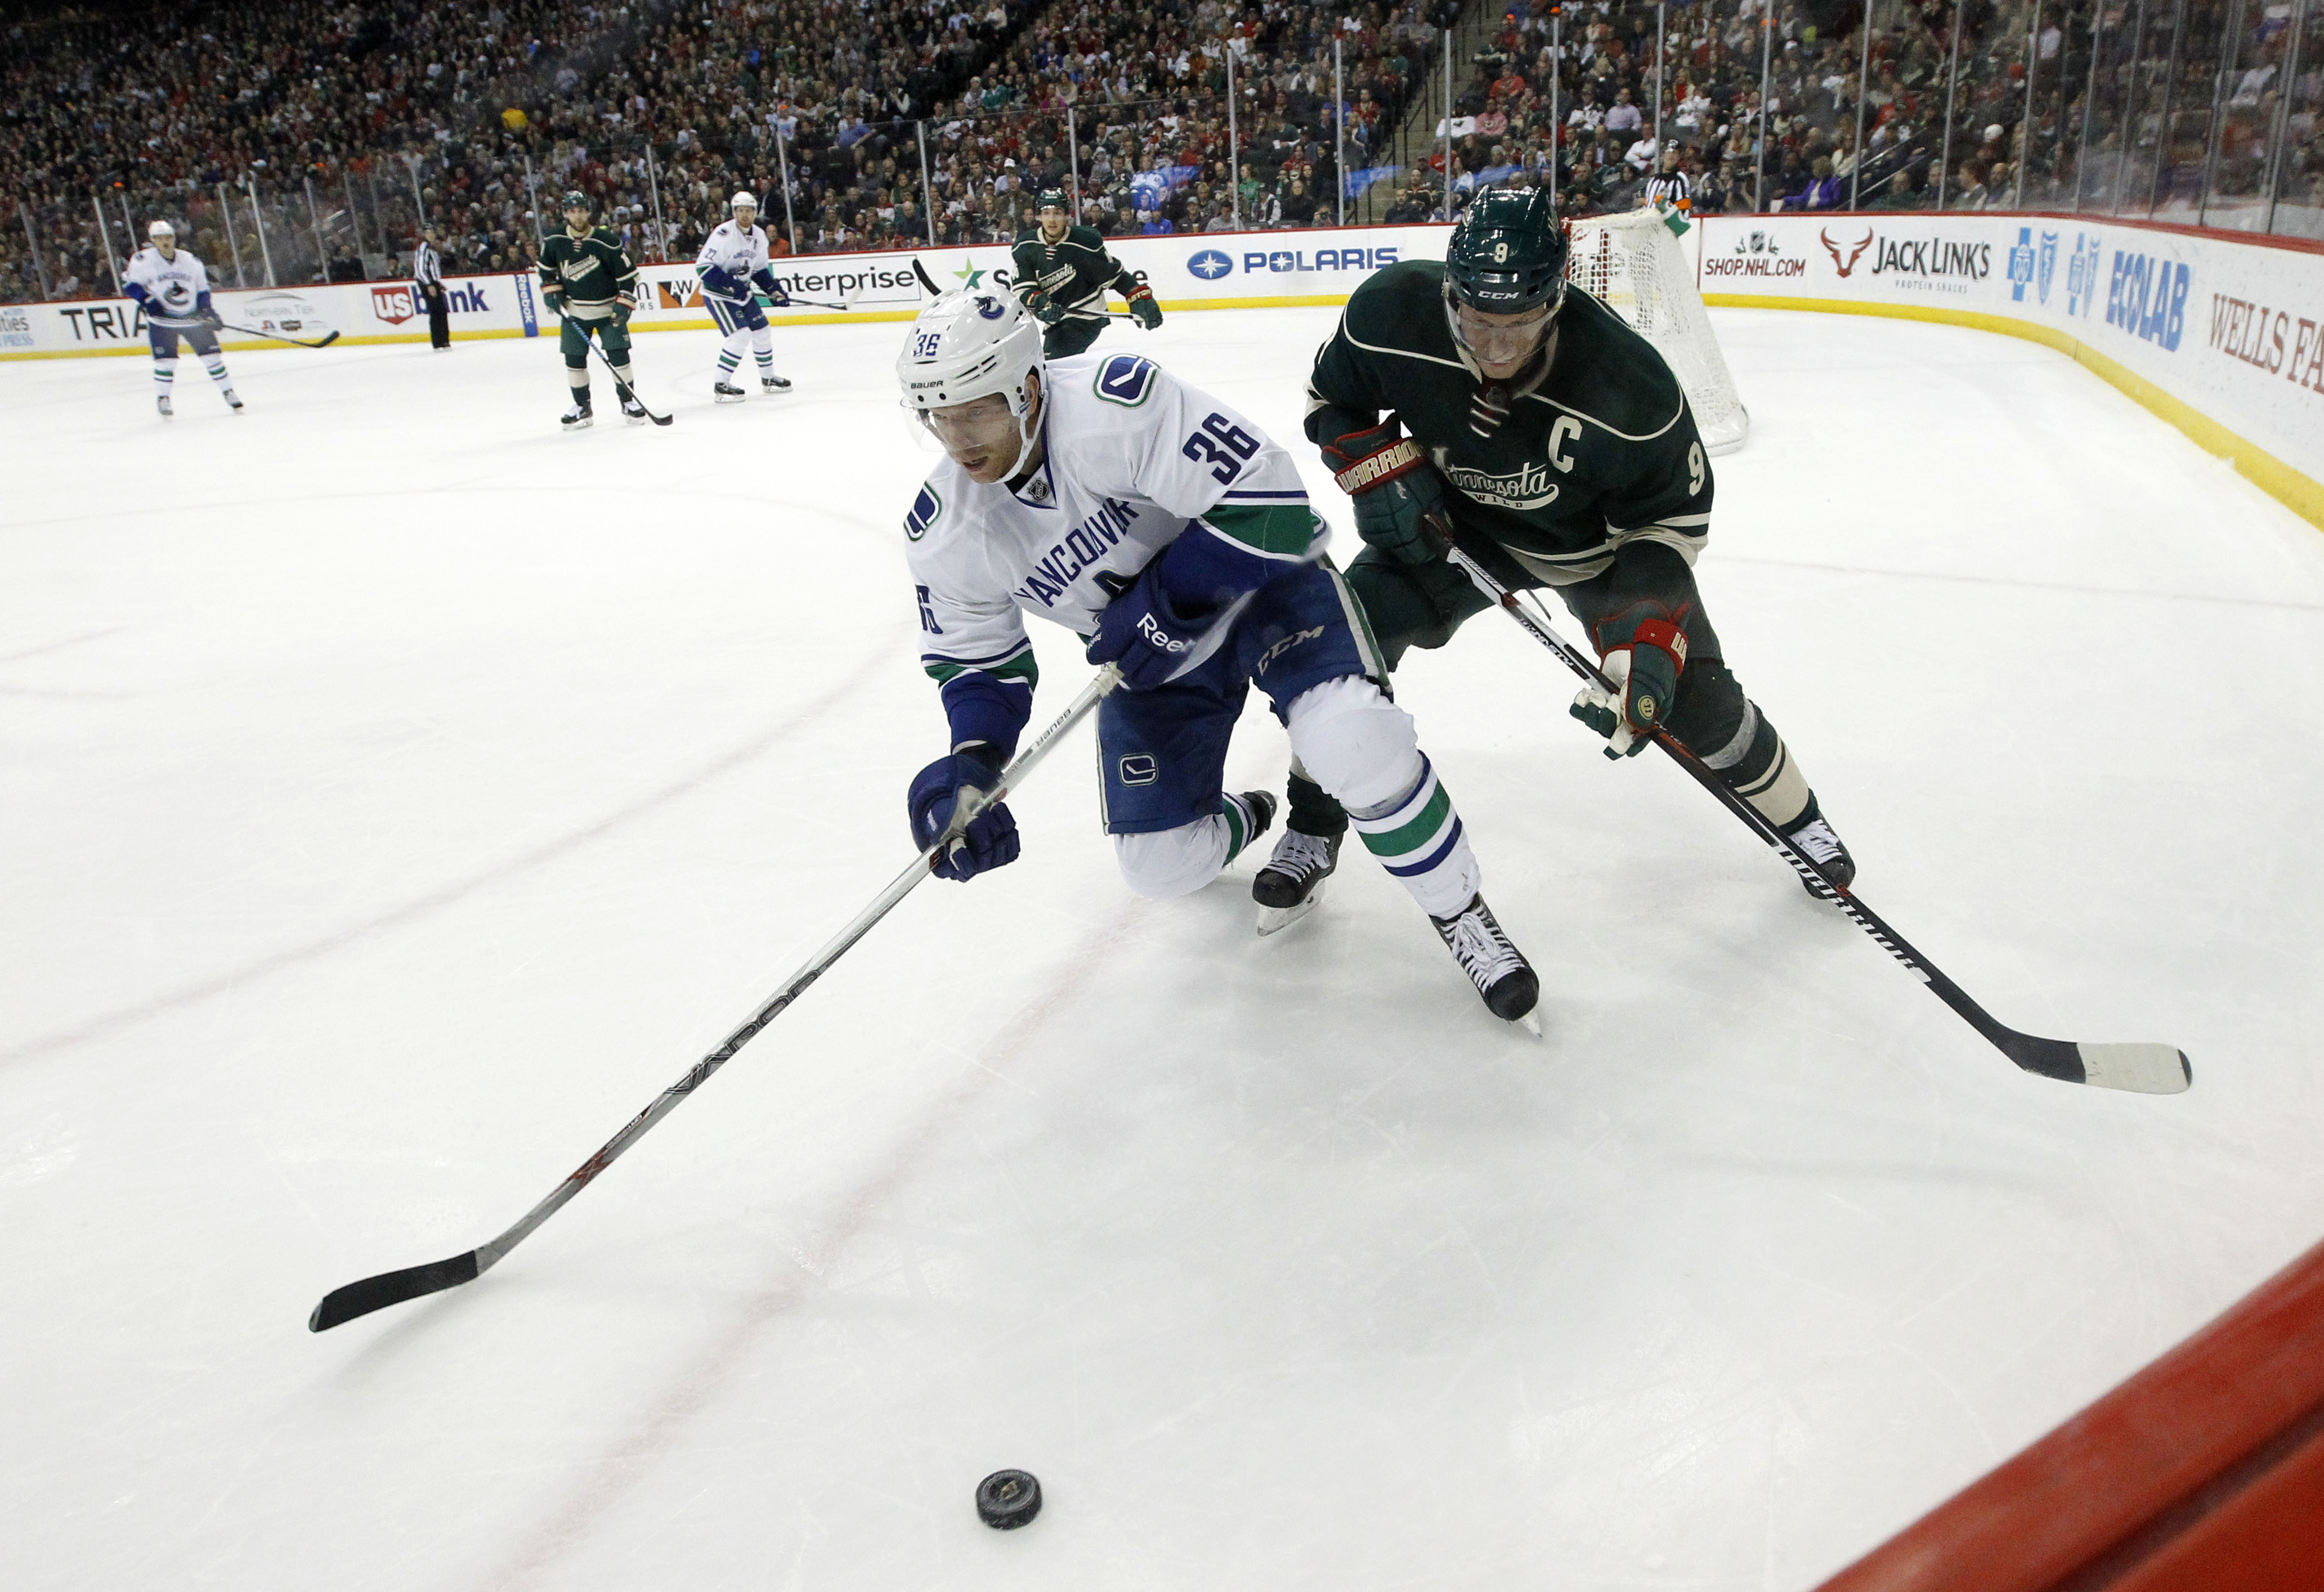 Vancouver Canucks right wing Jannik Hansen (36), of Denmark, and Minnesota Wild center Mikko Koivu (9), of Finland, chase the puck during the second period of an NHL hockey game in St. Paul, Minn., Wednesday, Nov. 25, 2015. (AP Photo/Ann Heisenfelt)